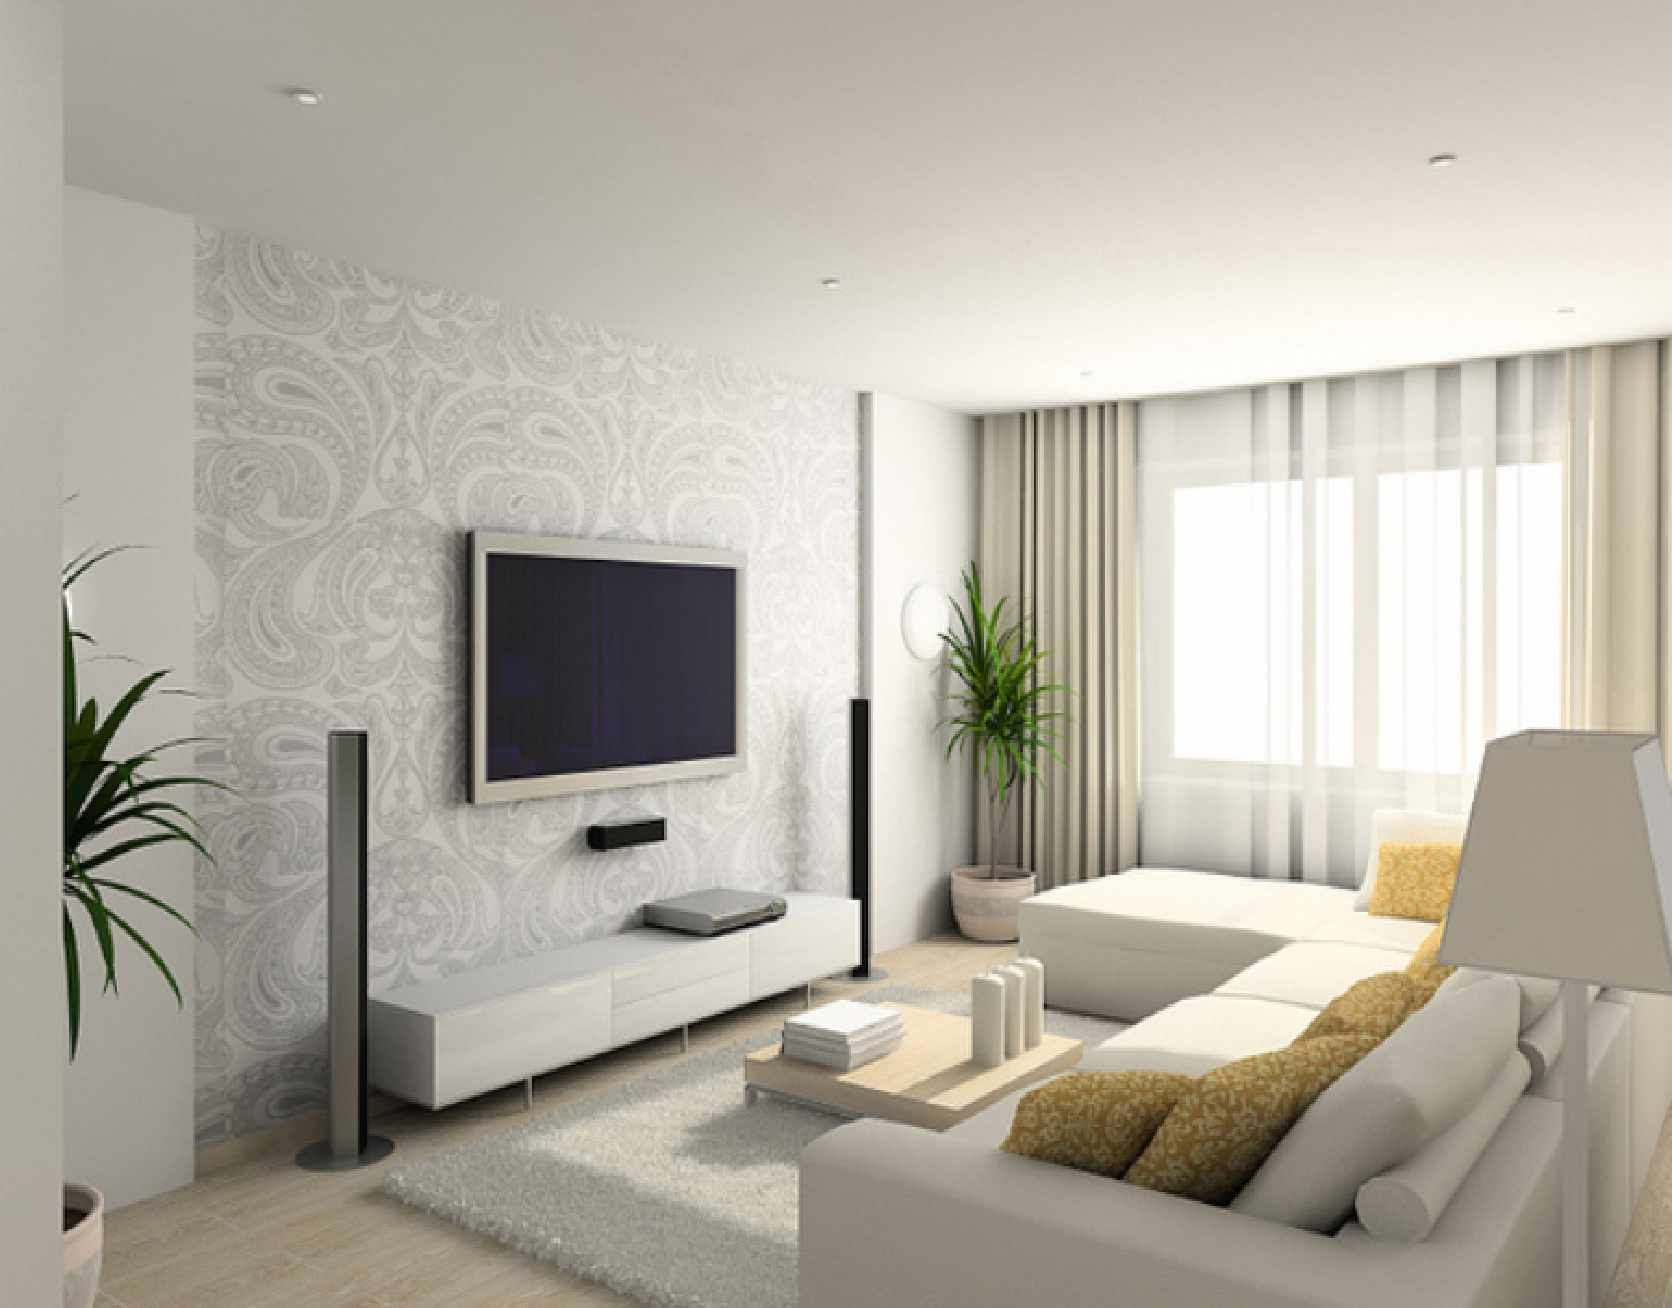 20 Apartment Decorating Ideas On A Budget Small Living Room Designs Living Room D Apartment Decor Inspiration Small Apartment Living Room Fresh Living Room